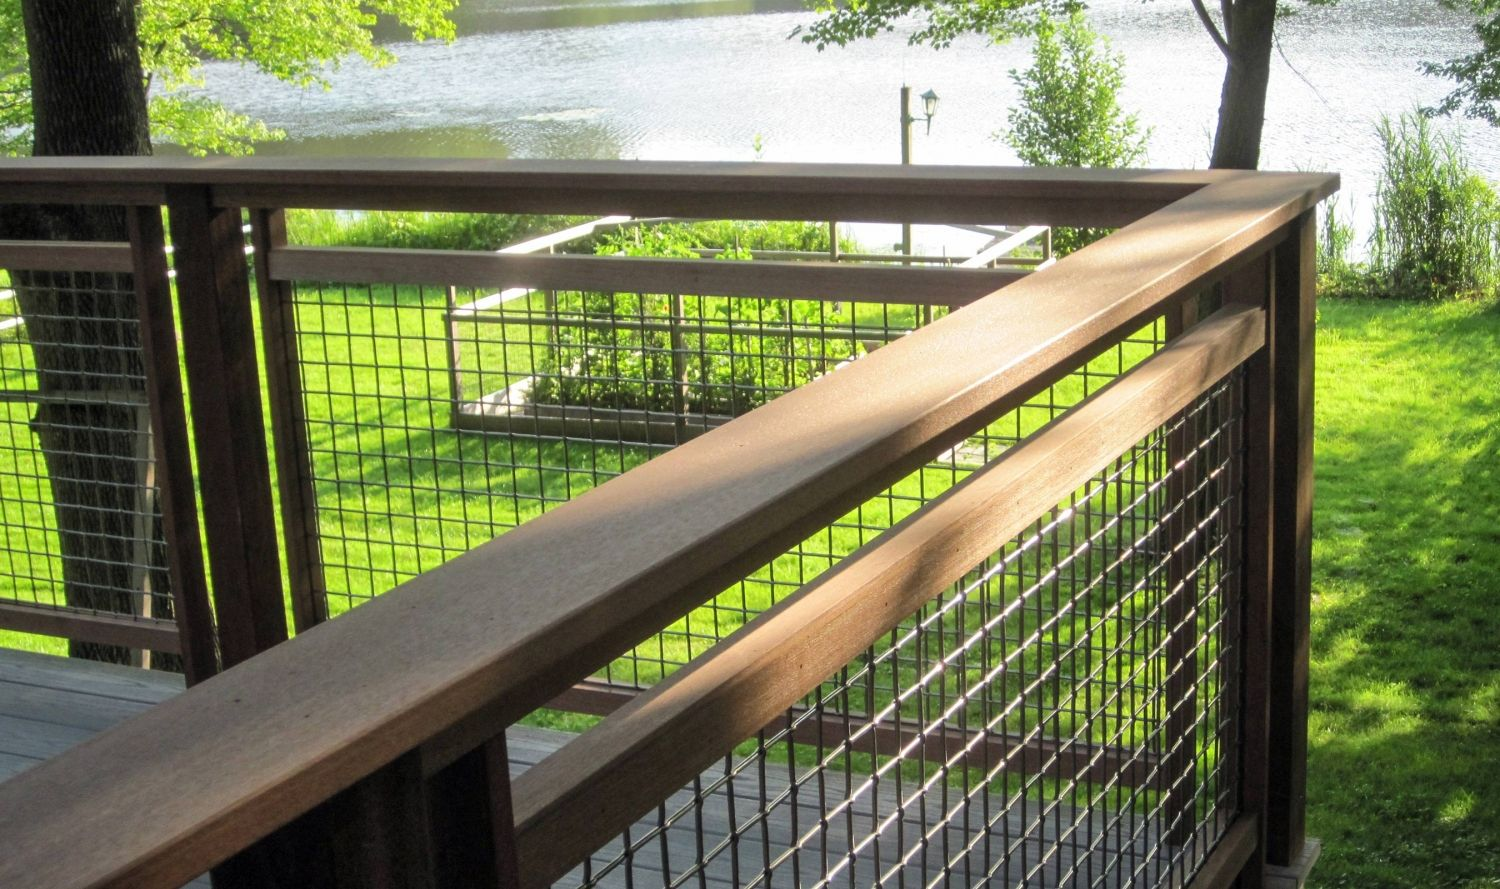 L 62 Woven Wire Mesh Is A Sturdy Mesh To Use As Railing Infill For This Back Yard Deck Deck Railings Wood Deck Railing Patio Fence